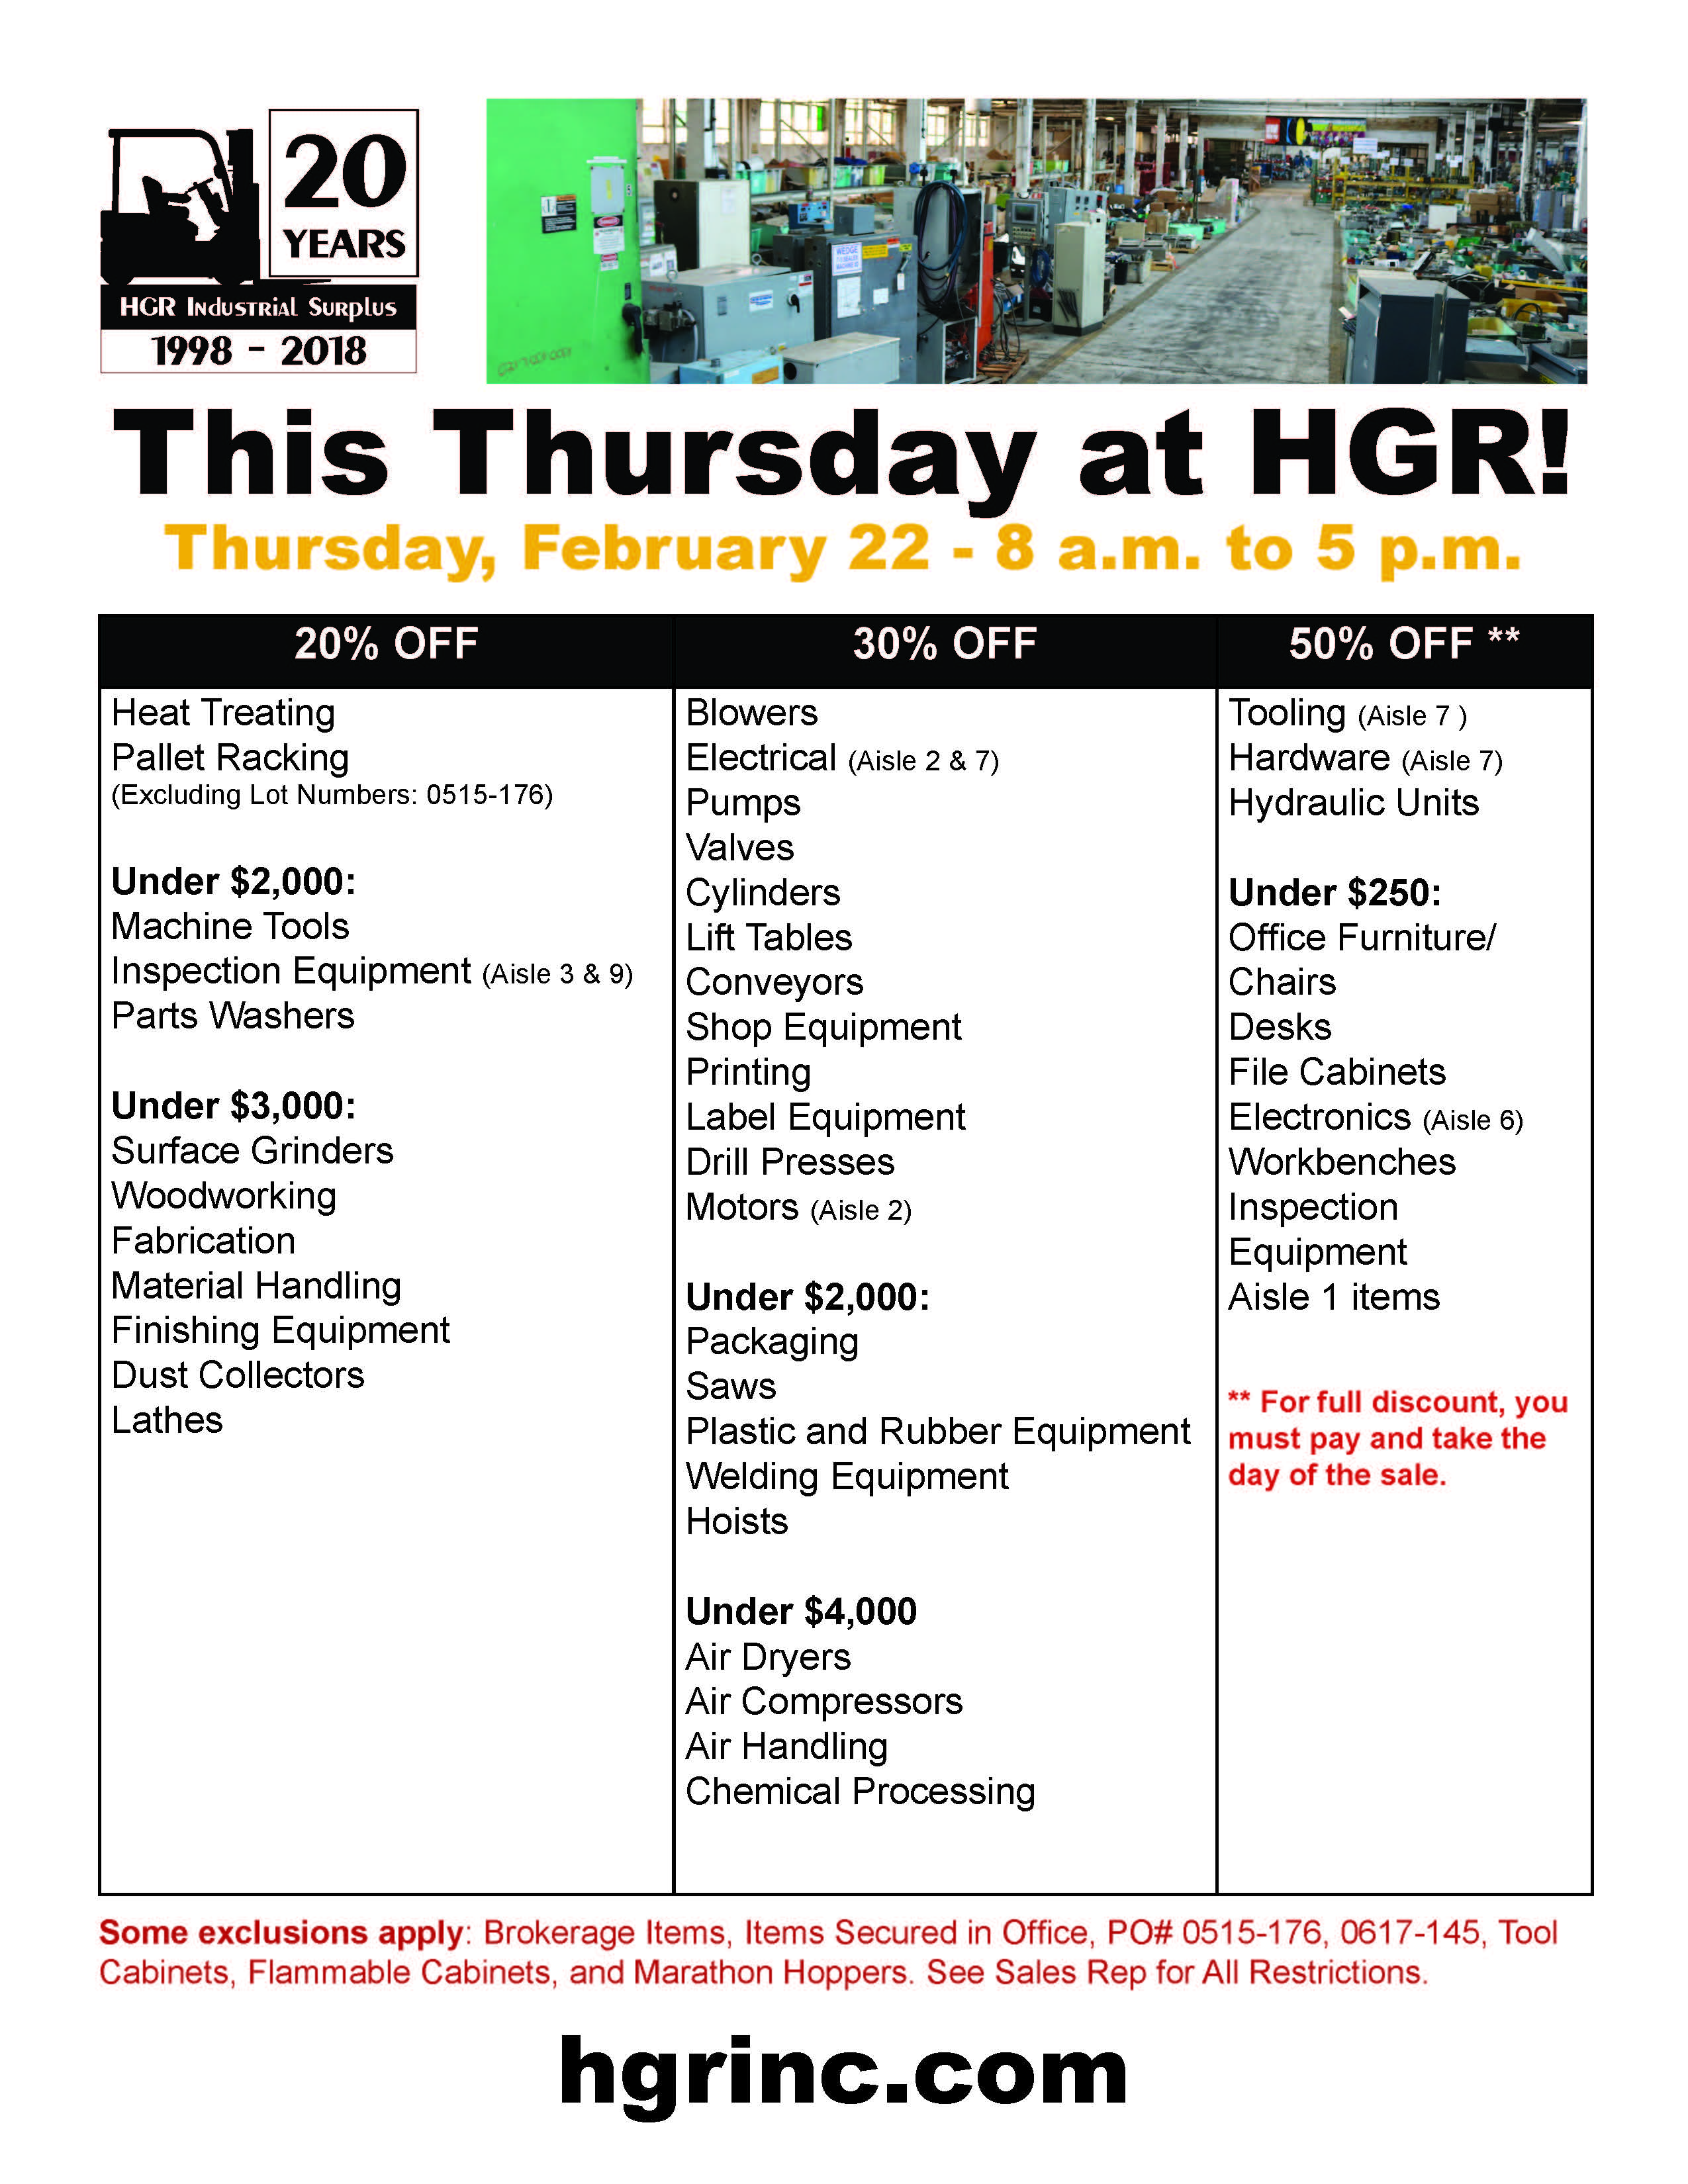 HGR Industrial Surplus February 2018 sale flyer